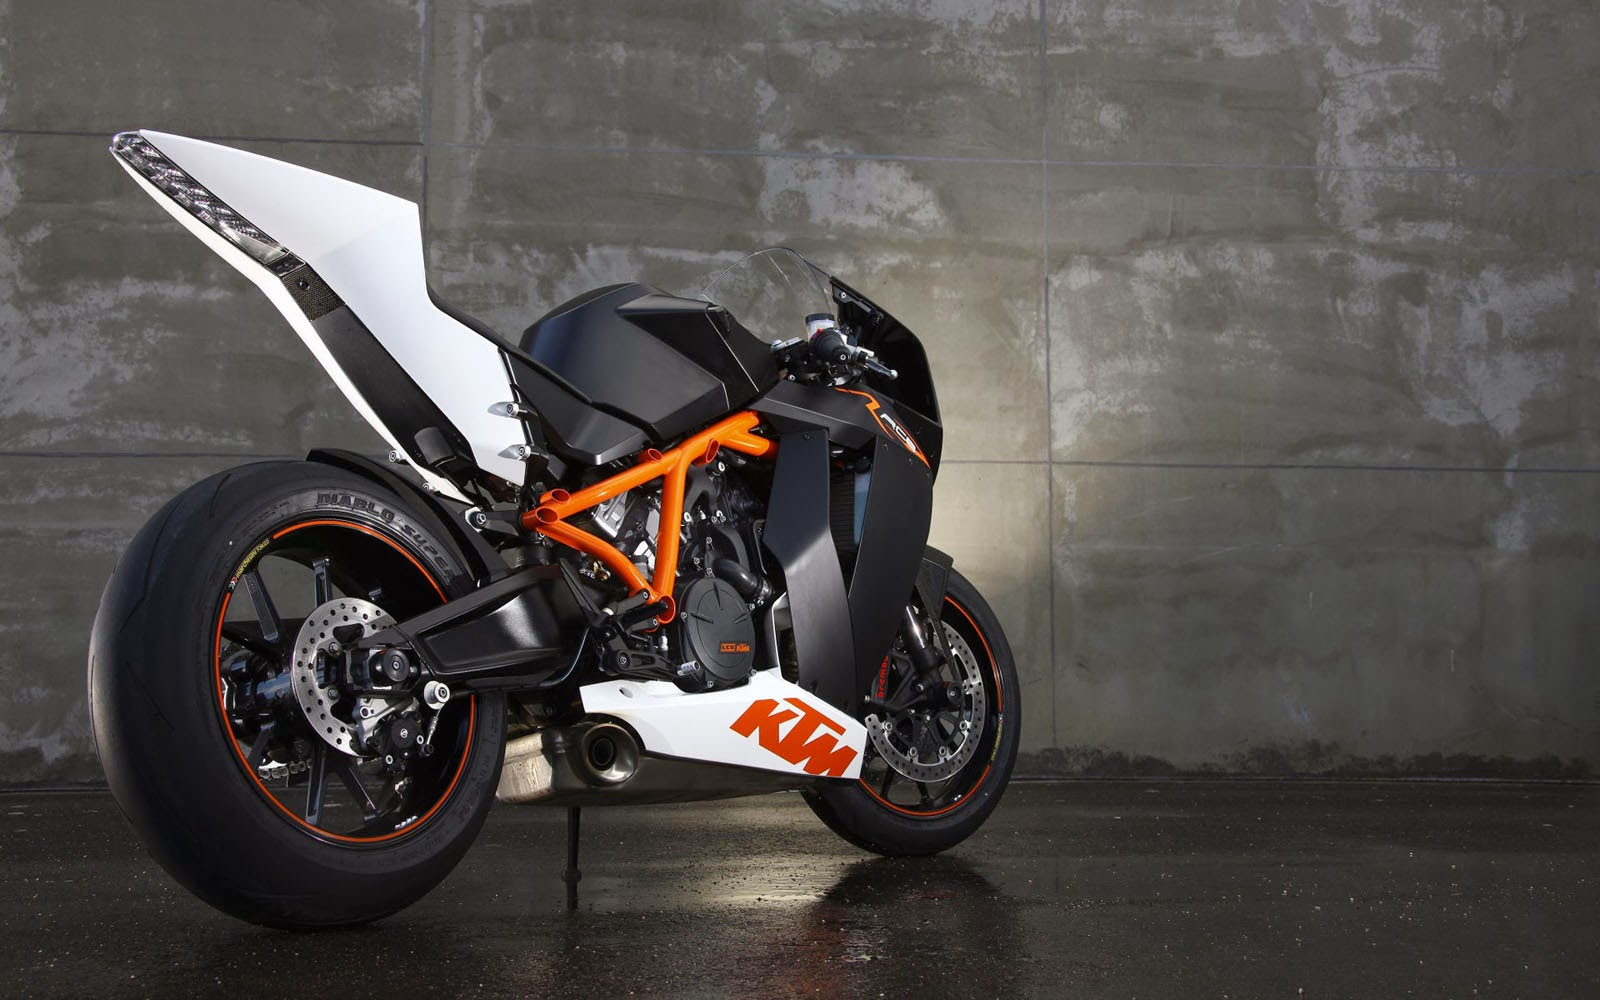 10 New Ktm Dirt Bike Wallpapers Full Hd 1080p For Pc: Wallpapers: KTM RC8 Wallpapers